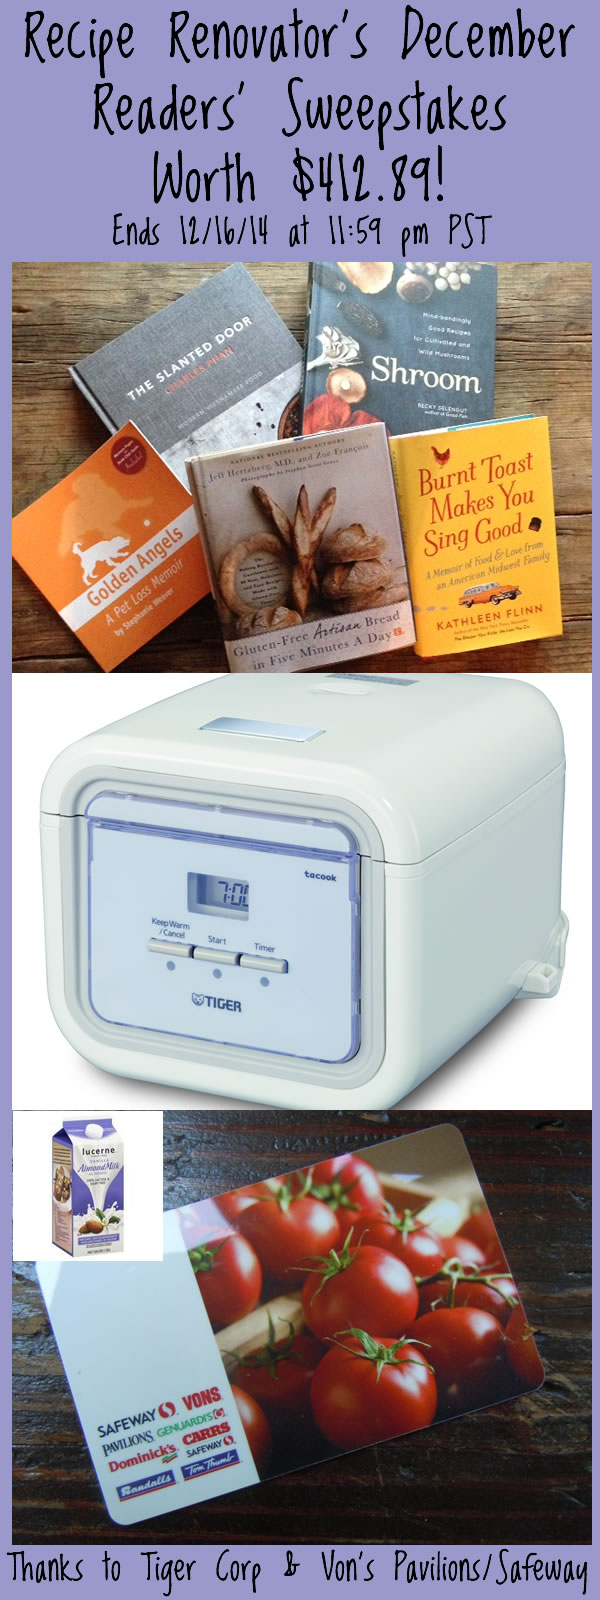 December 2014 Readers Sweepstakes Prizes | Recipe Renovator | Ends 12/16/14 at 11:59 PM PST